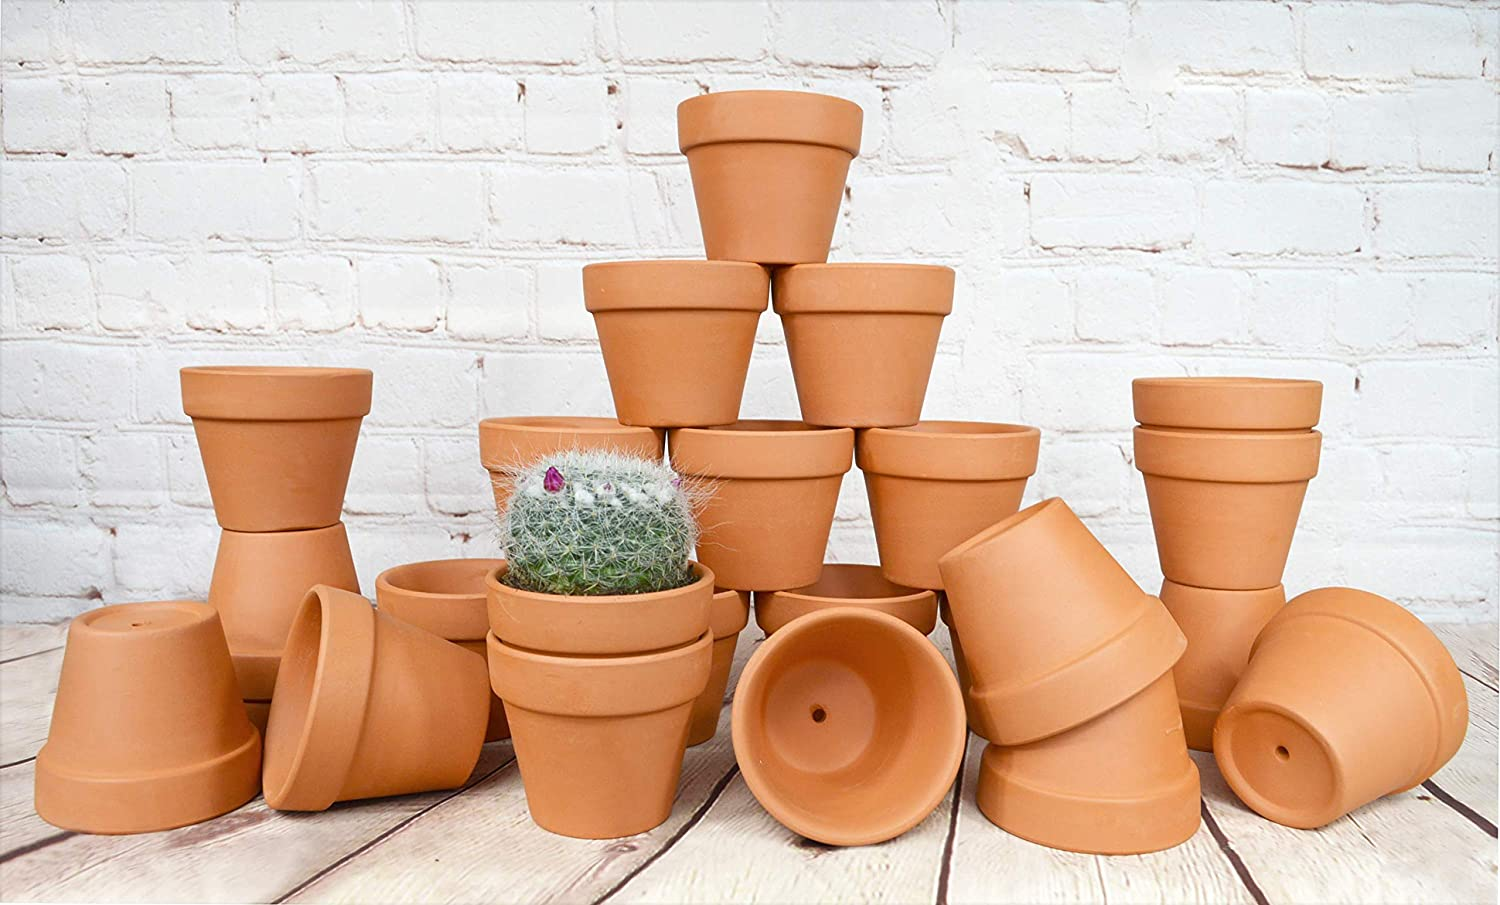 My Urban Crafts 24 Pcs Small Terra Cotta Pots 2.5 x 3 inch Mini Flower Clay Pots with Drainage Hole Ceramic Pottery Nursery Terracotta Planter for Succulent Cactus Plants, Wedding Bridal Party Favors